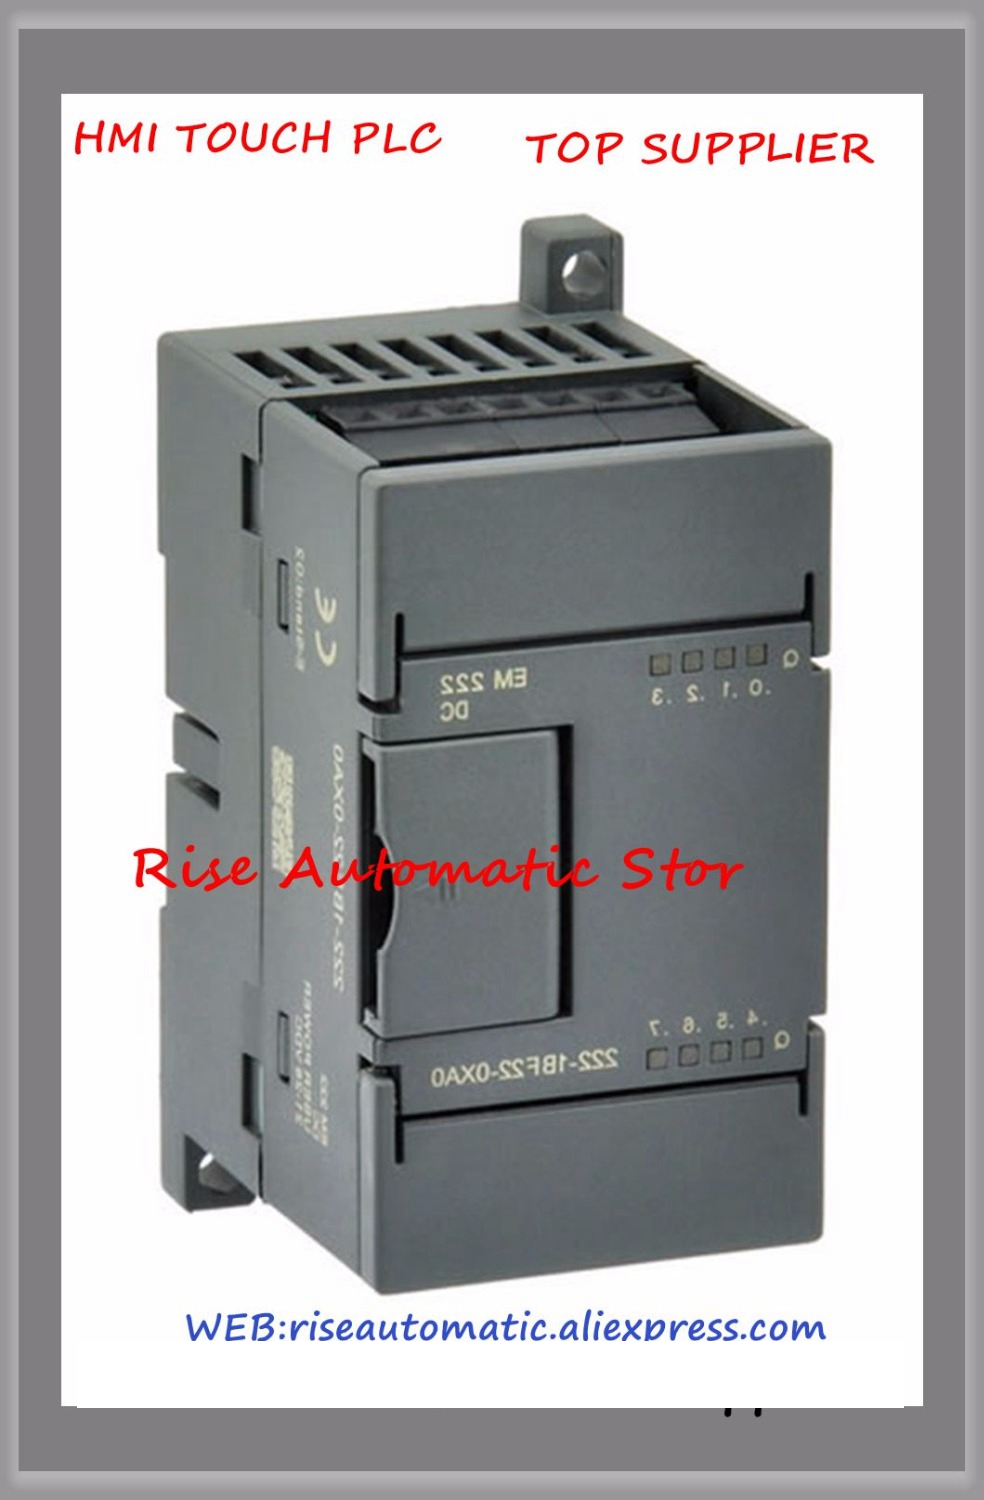 New Original PLC Module 6ES7 222-1BF22-0XA0 100% test good quality цена